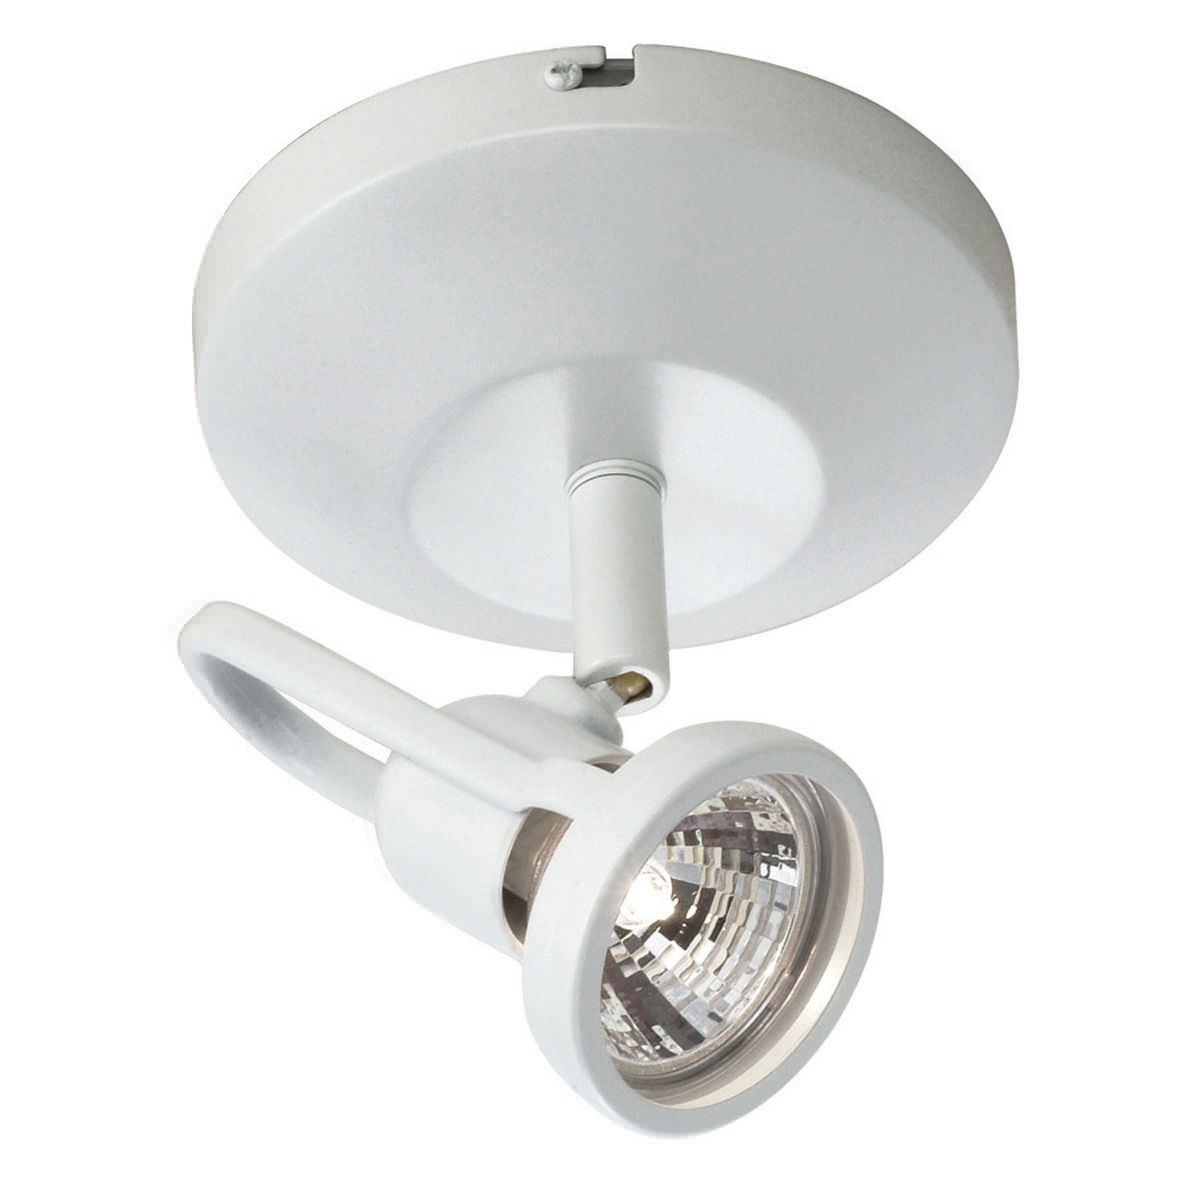 Ceiling mounted spotlight indoor halogen round me 826 ceiling mounted spotlight indoor halogen round me 826 mozeypictures Images